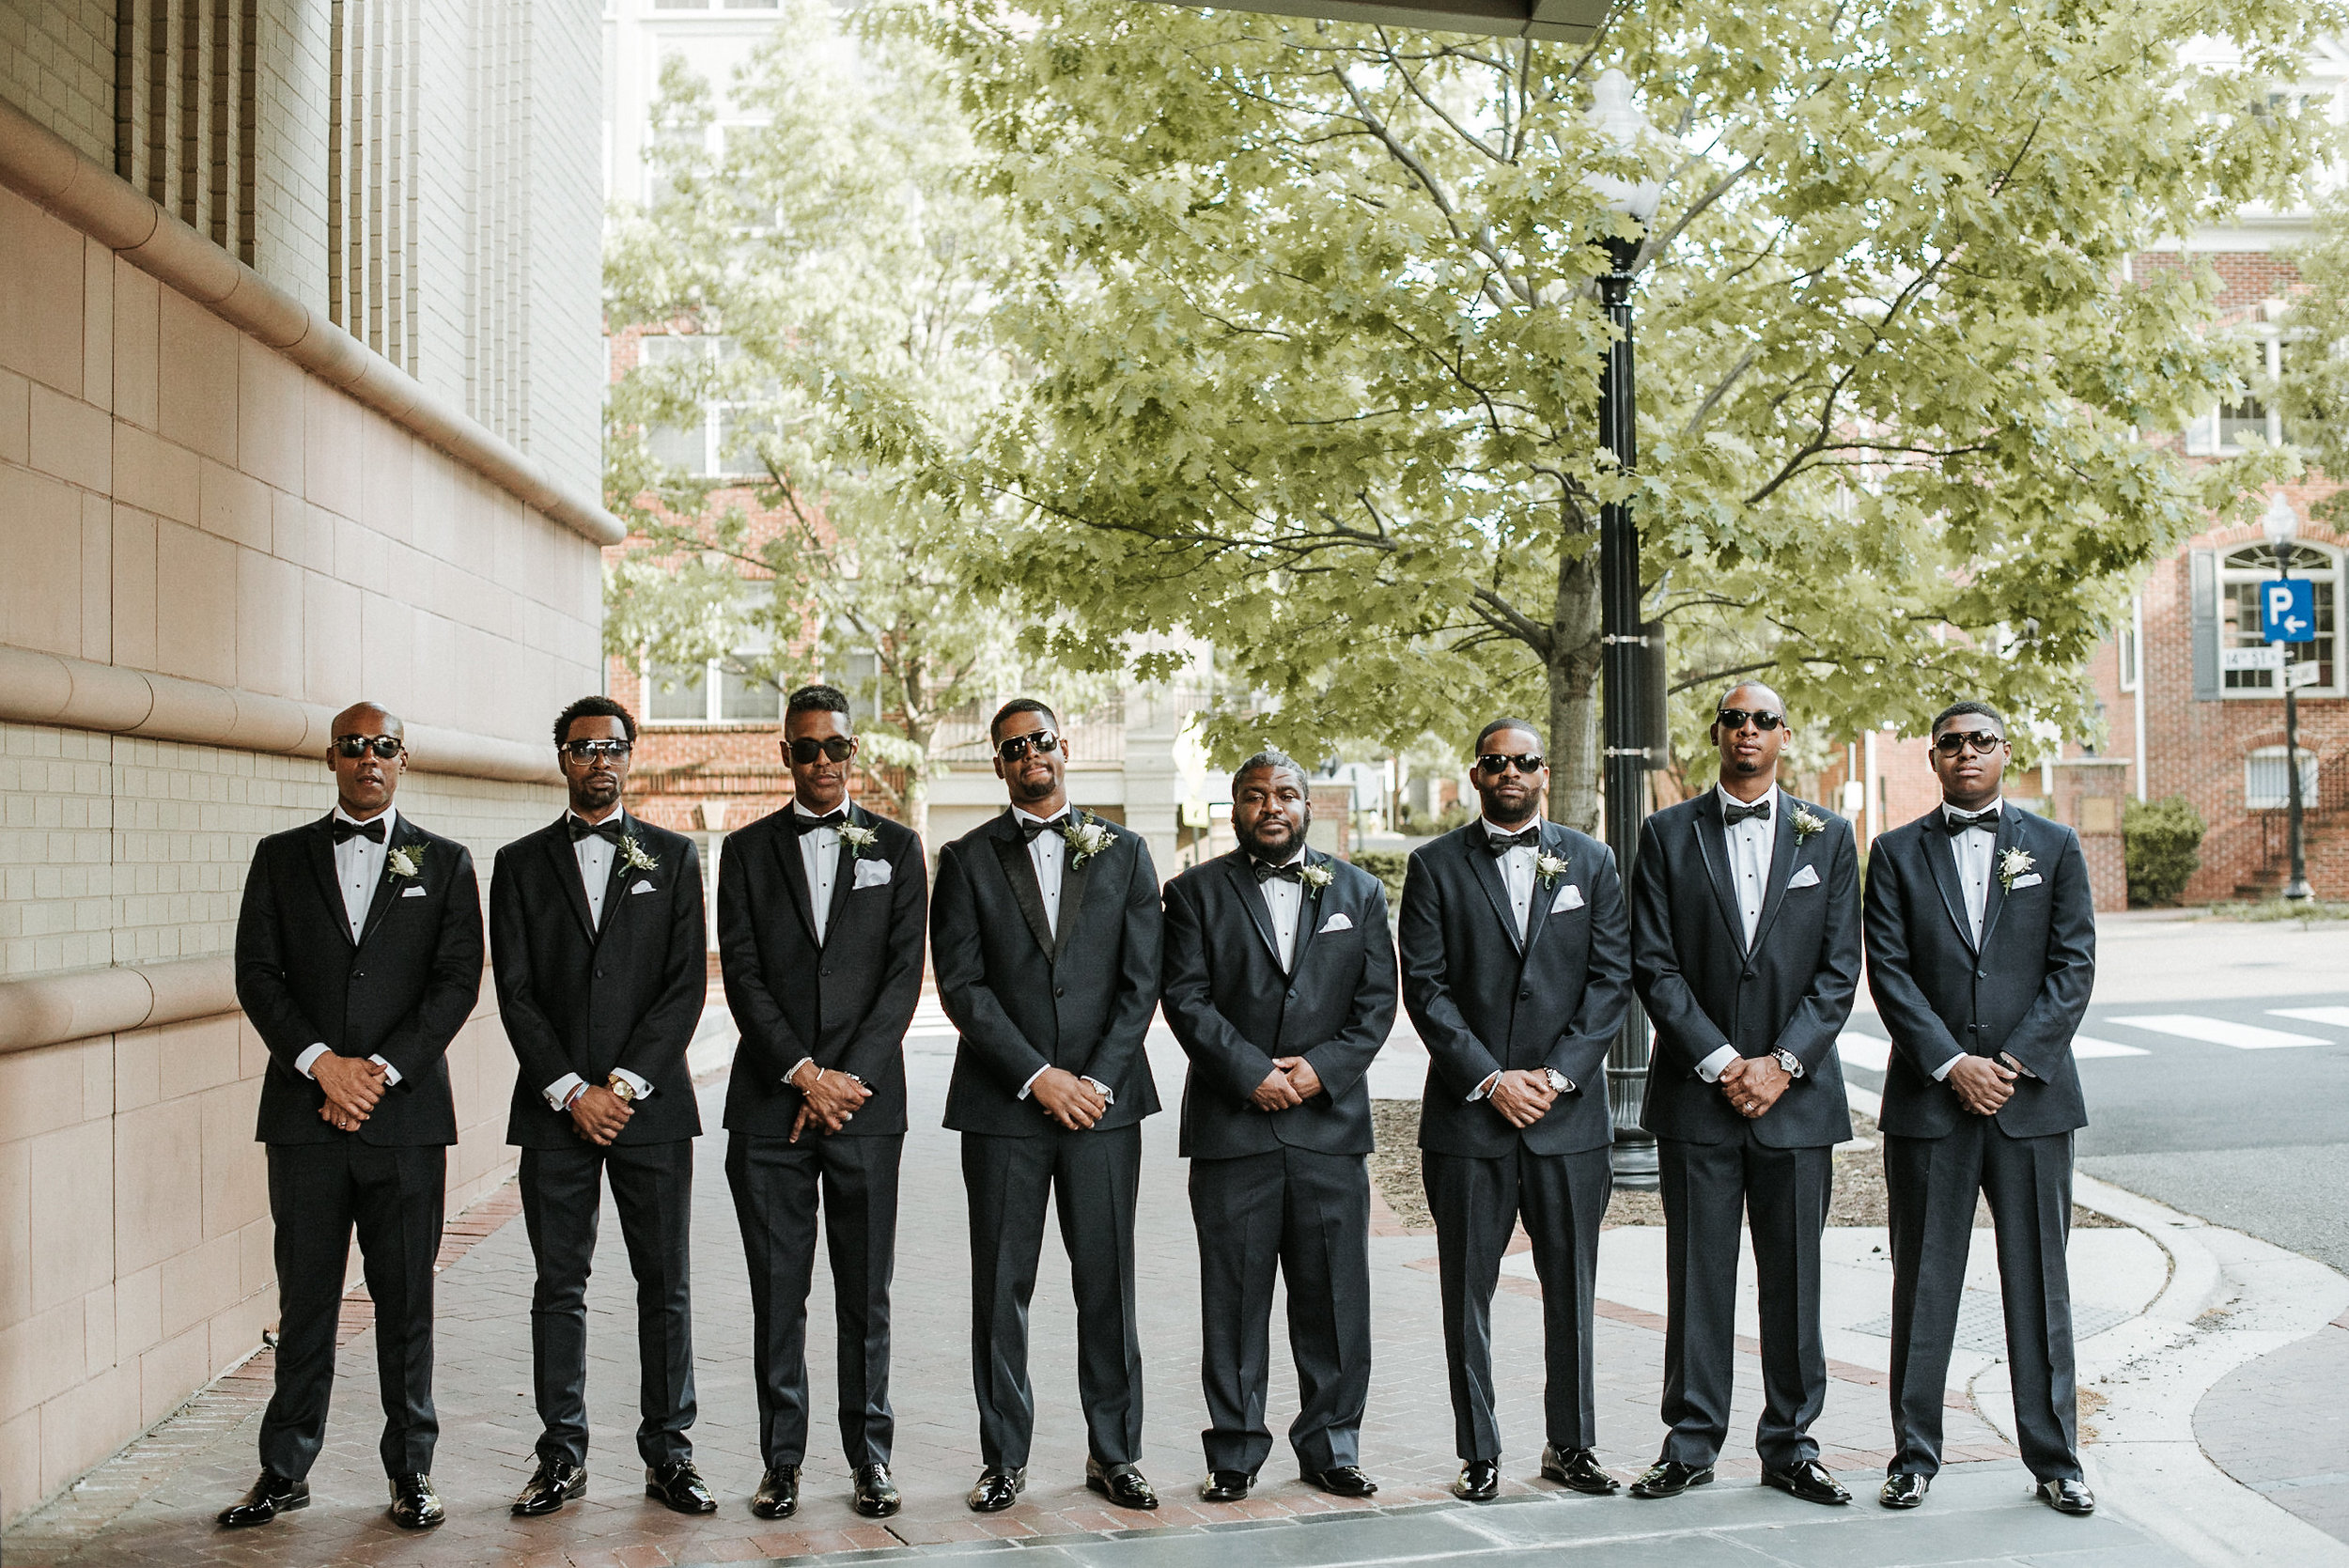 Groomsmen in front of hotel